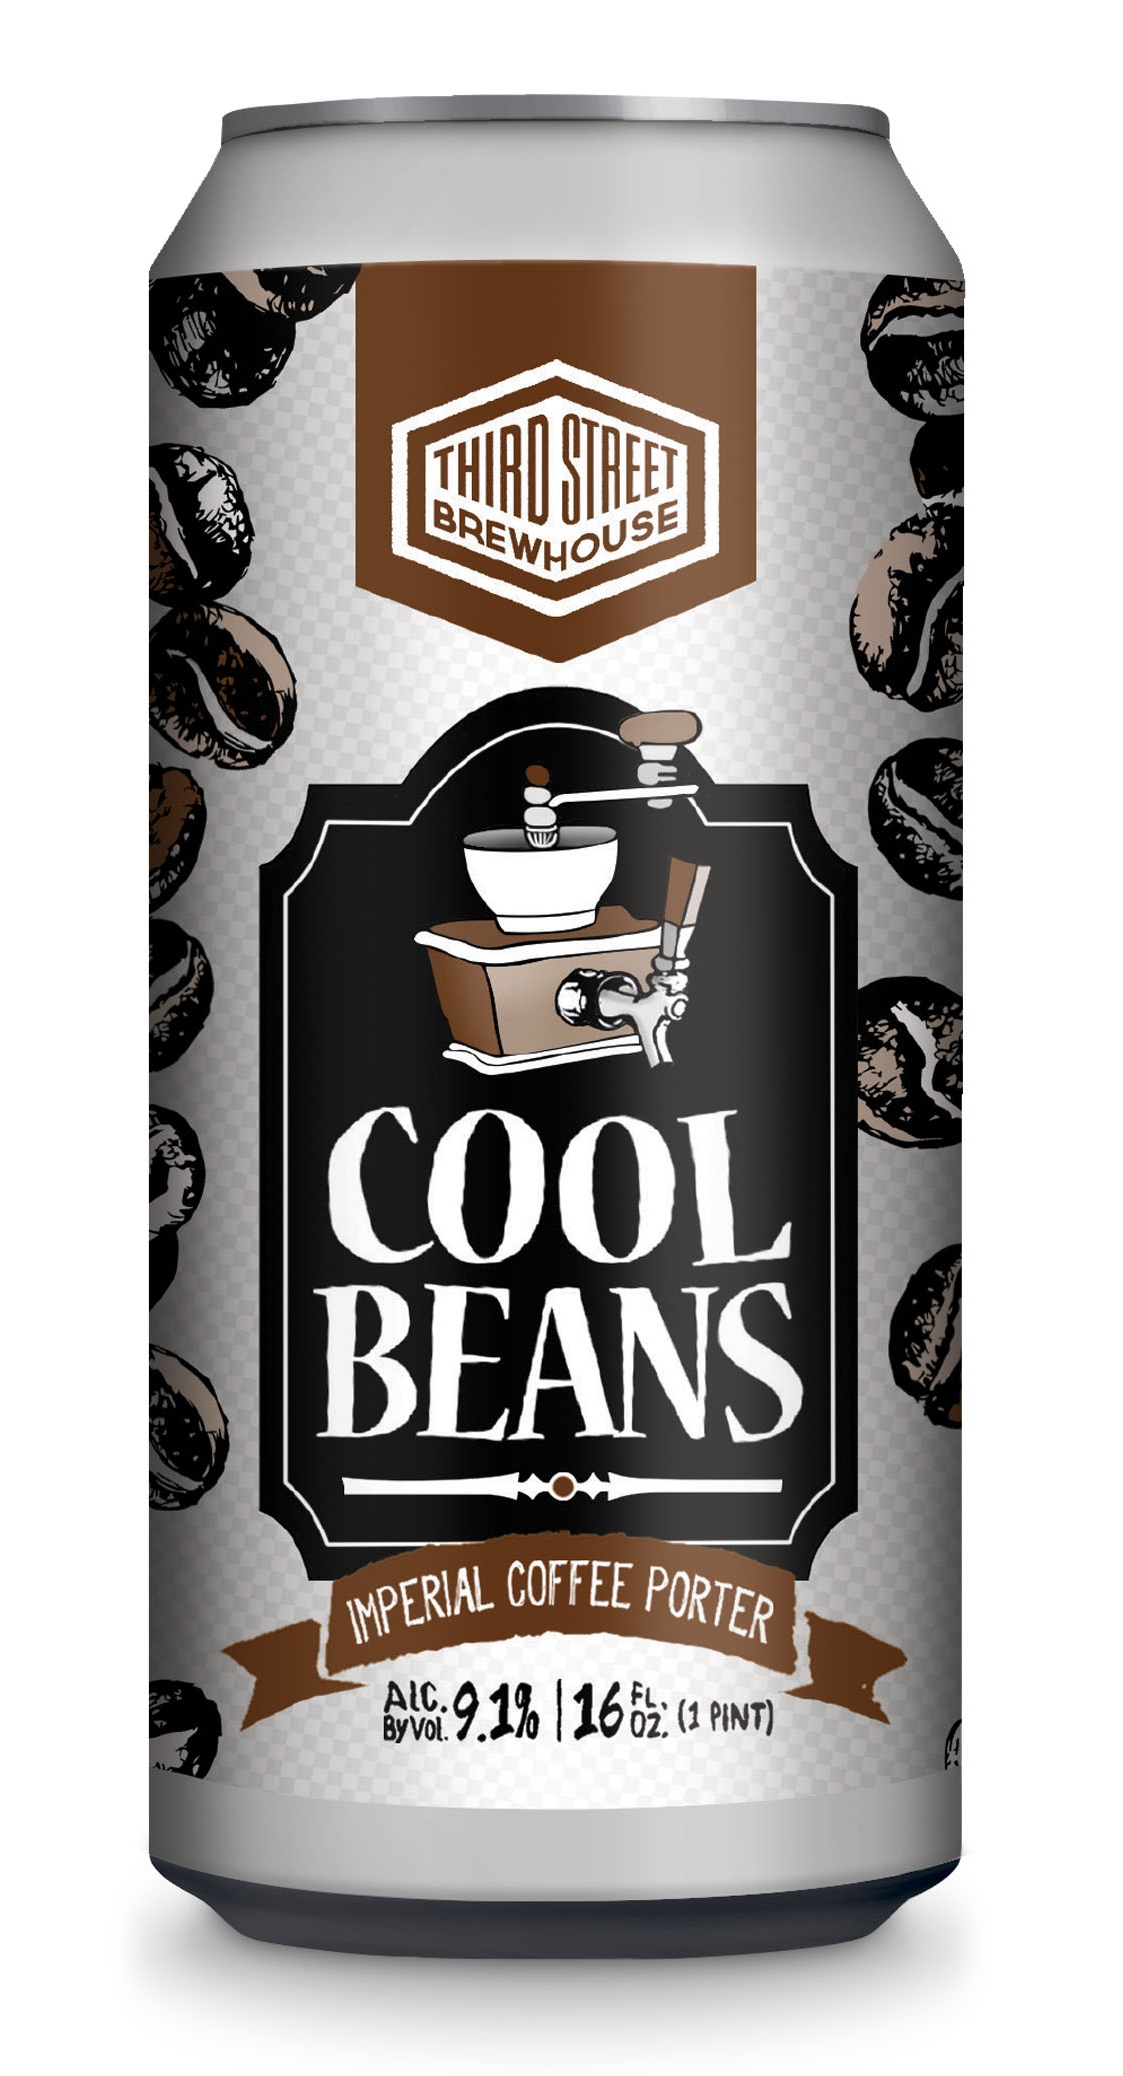 Kool A Brew Can Coolers ~ Third street brewhouse releases cool beans imperial coffee